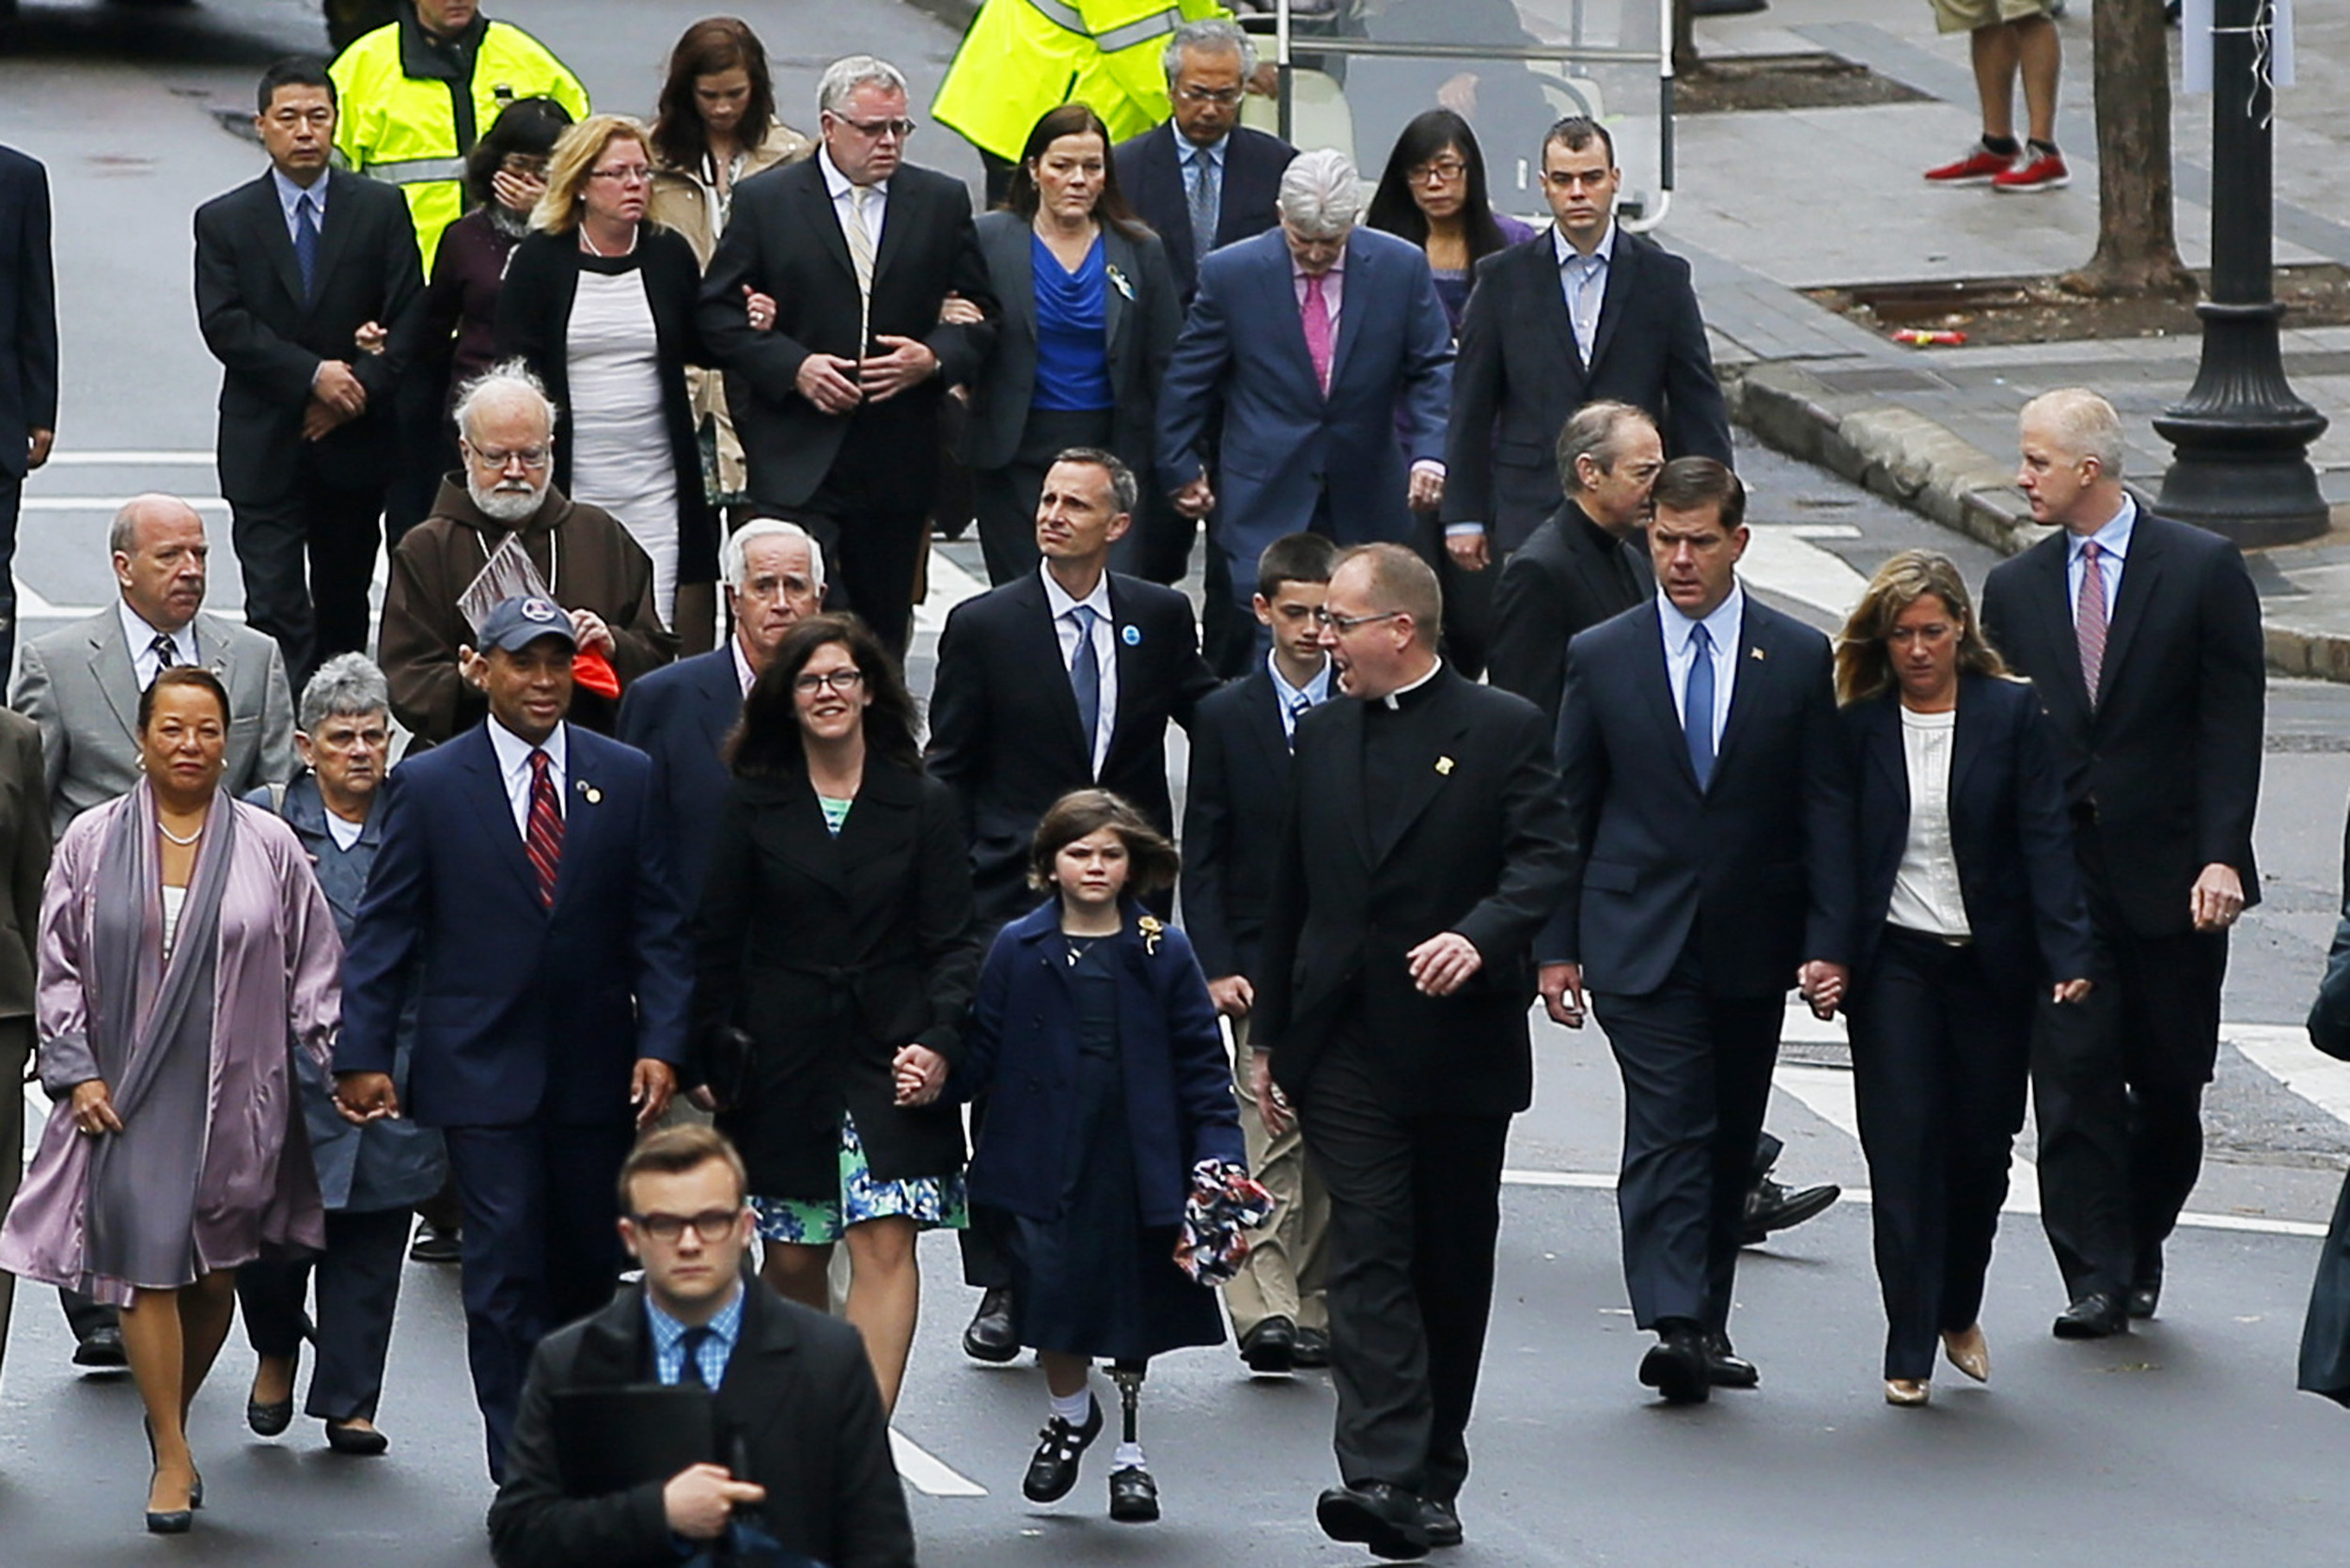 Family members of the victims of the 2013 Boston Marathon bombings walk with Massachusetts Gov. Deval Patrick (in baseball cap, L) and Boston Mayor Marty Walsh (3rd R).